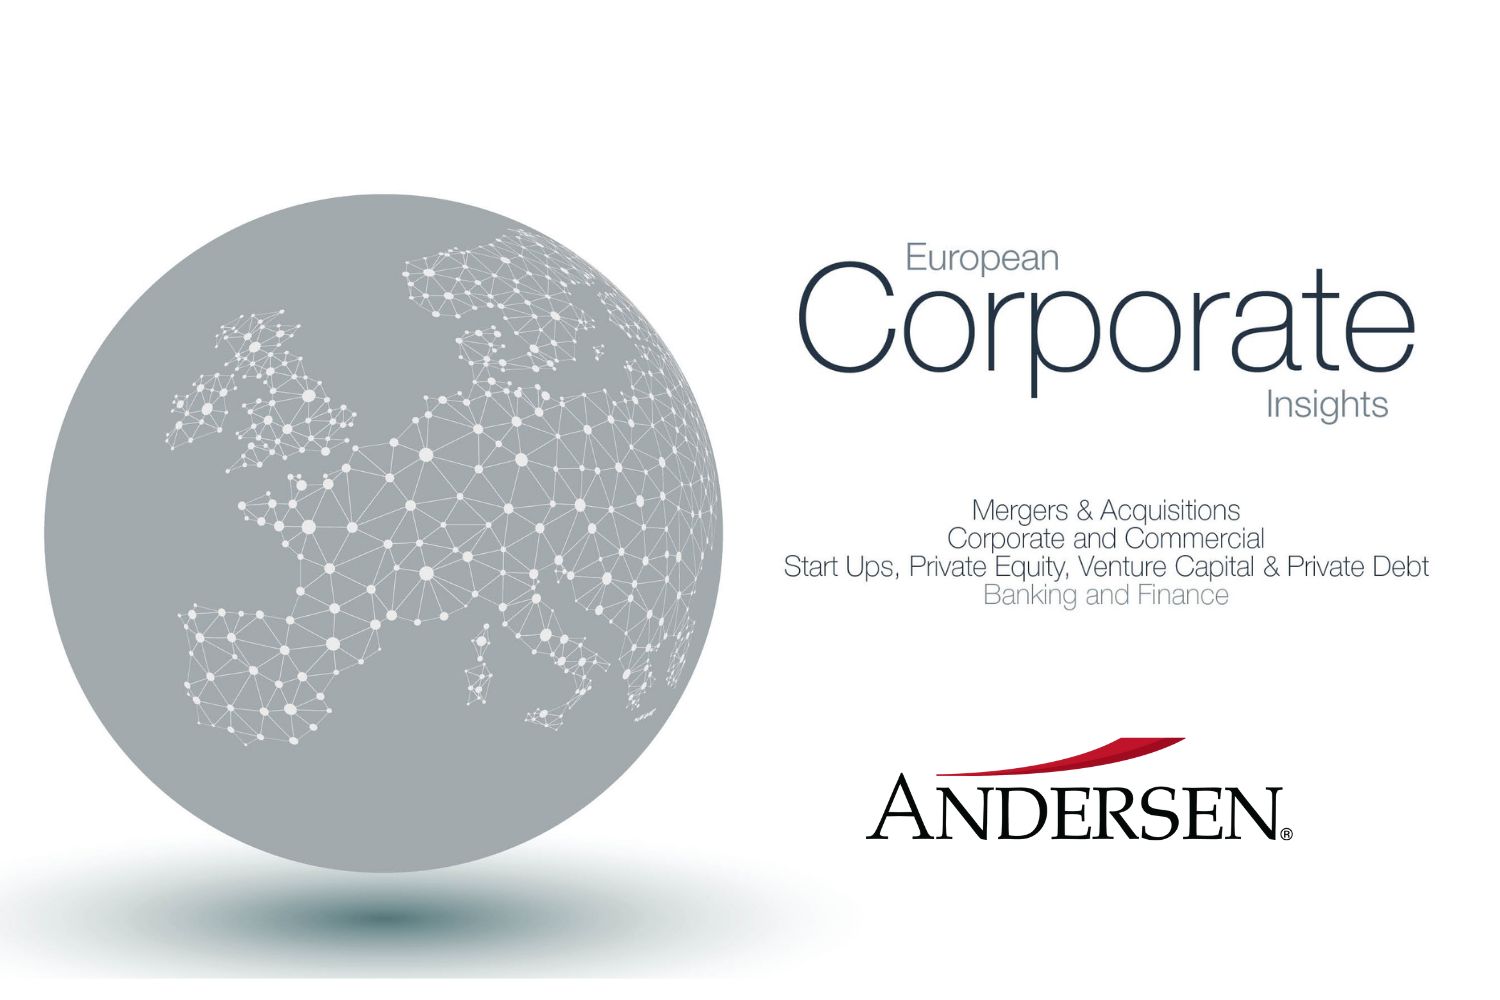 European Corporate Legal Insights: How to Finance M&A transaction in Europe